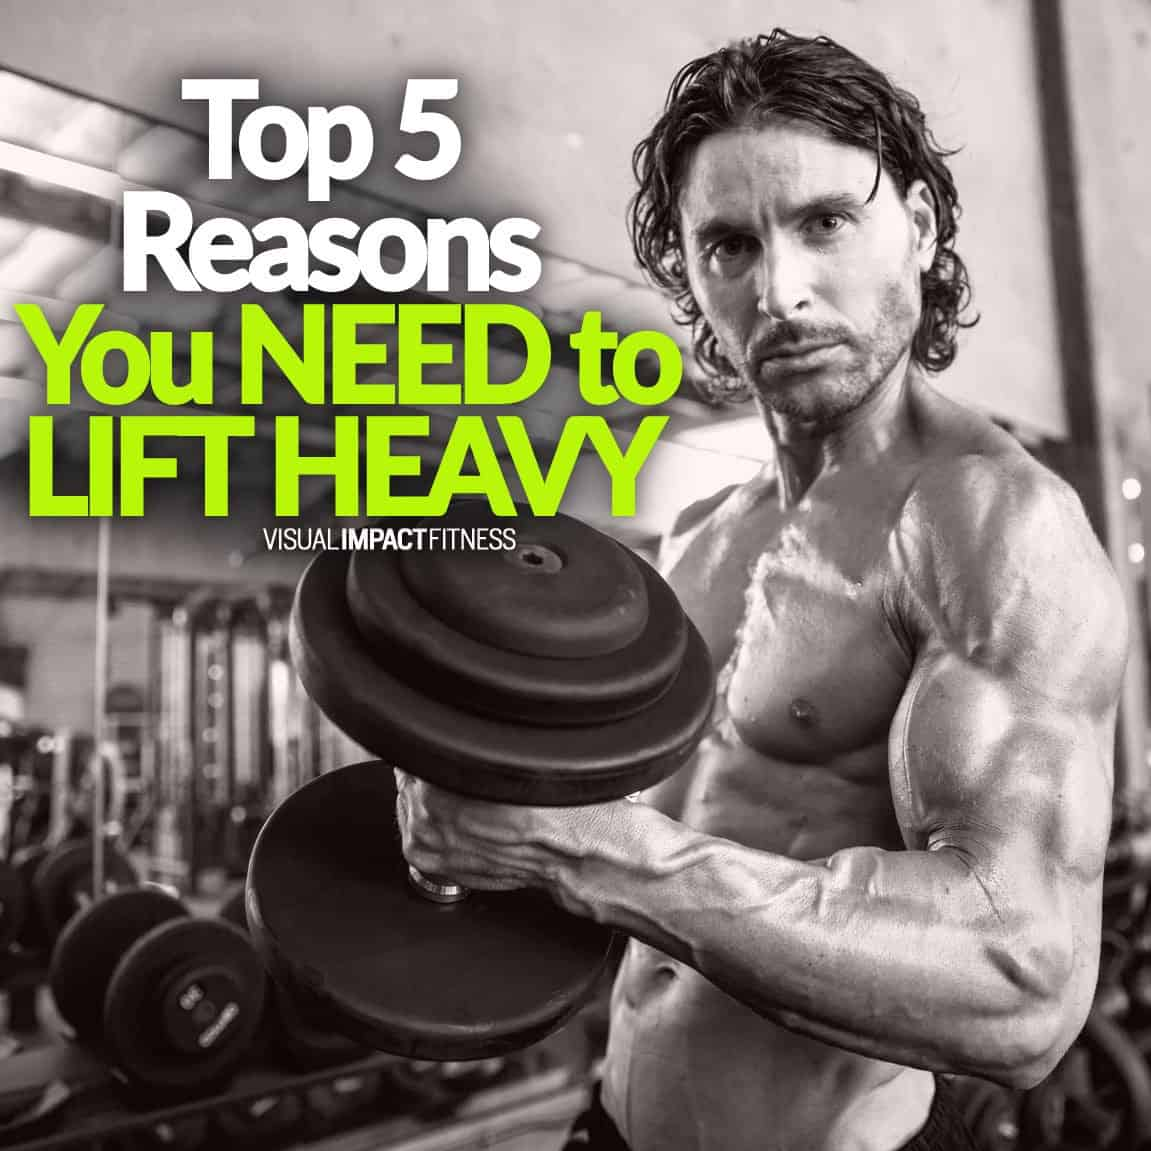 Top 5 Reasons You NEED to LIFT HEAVY